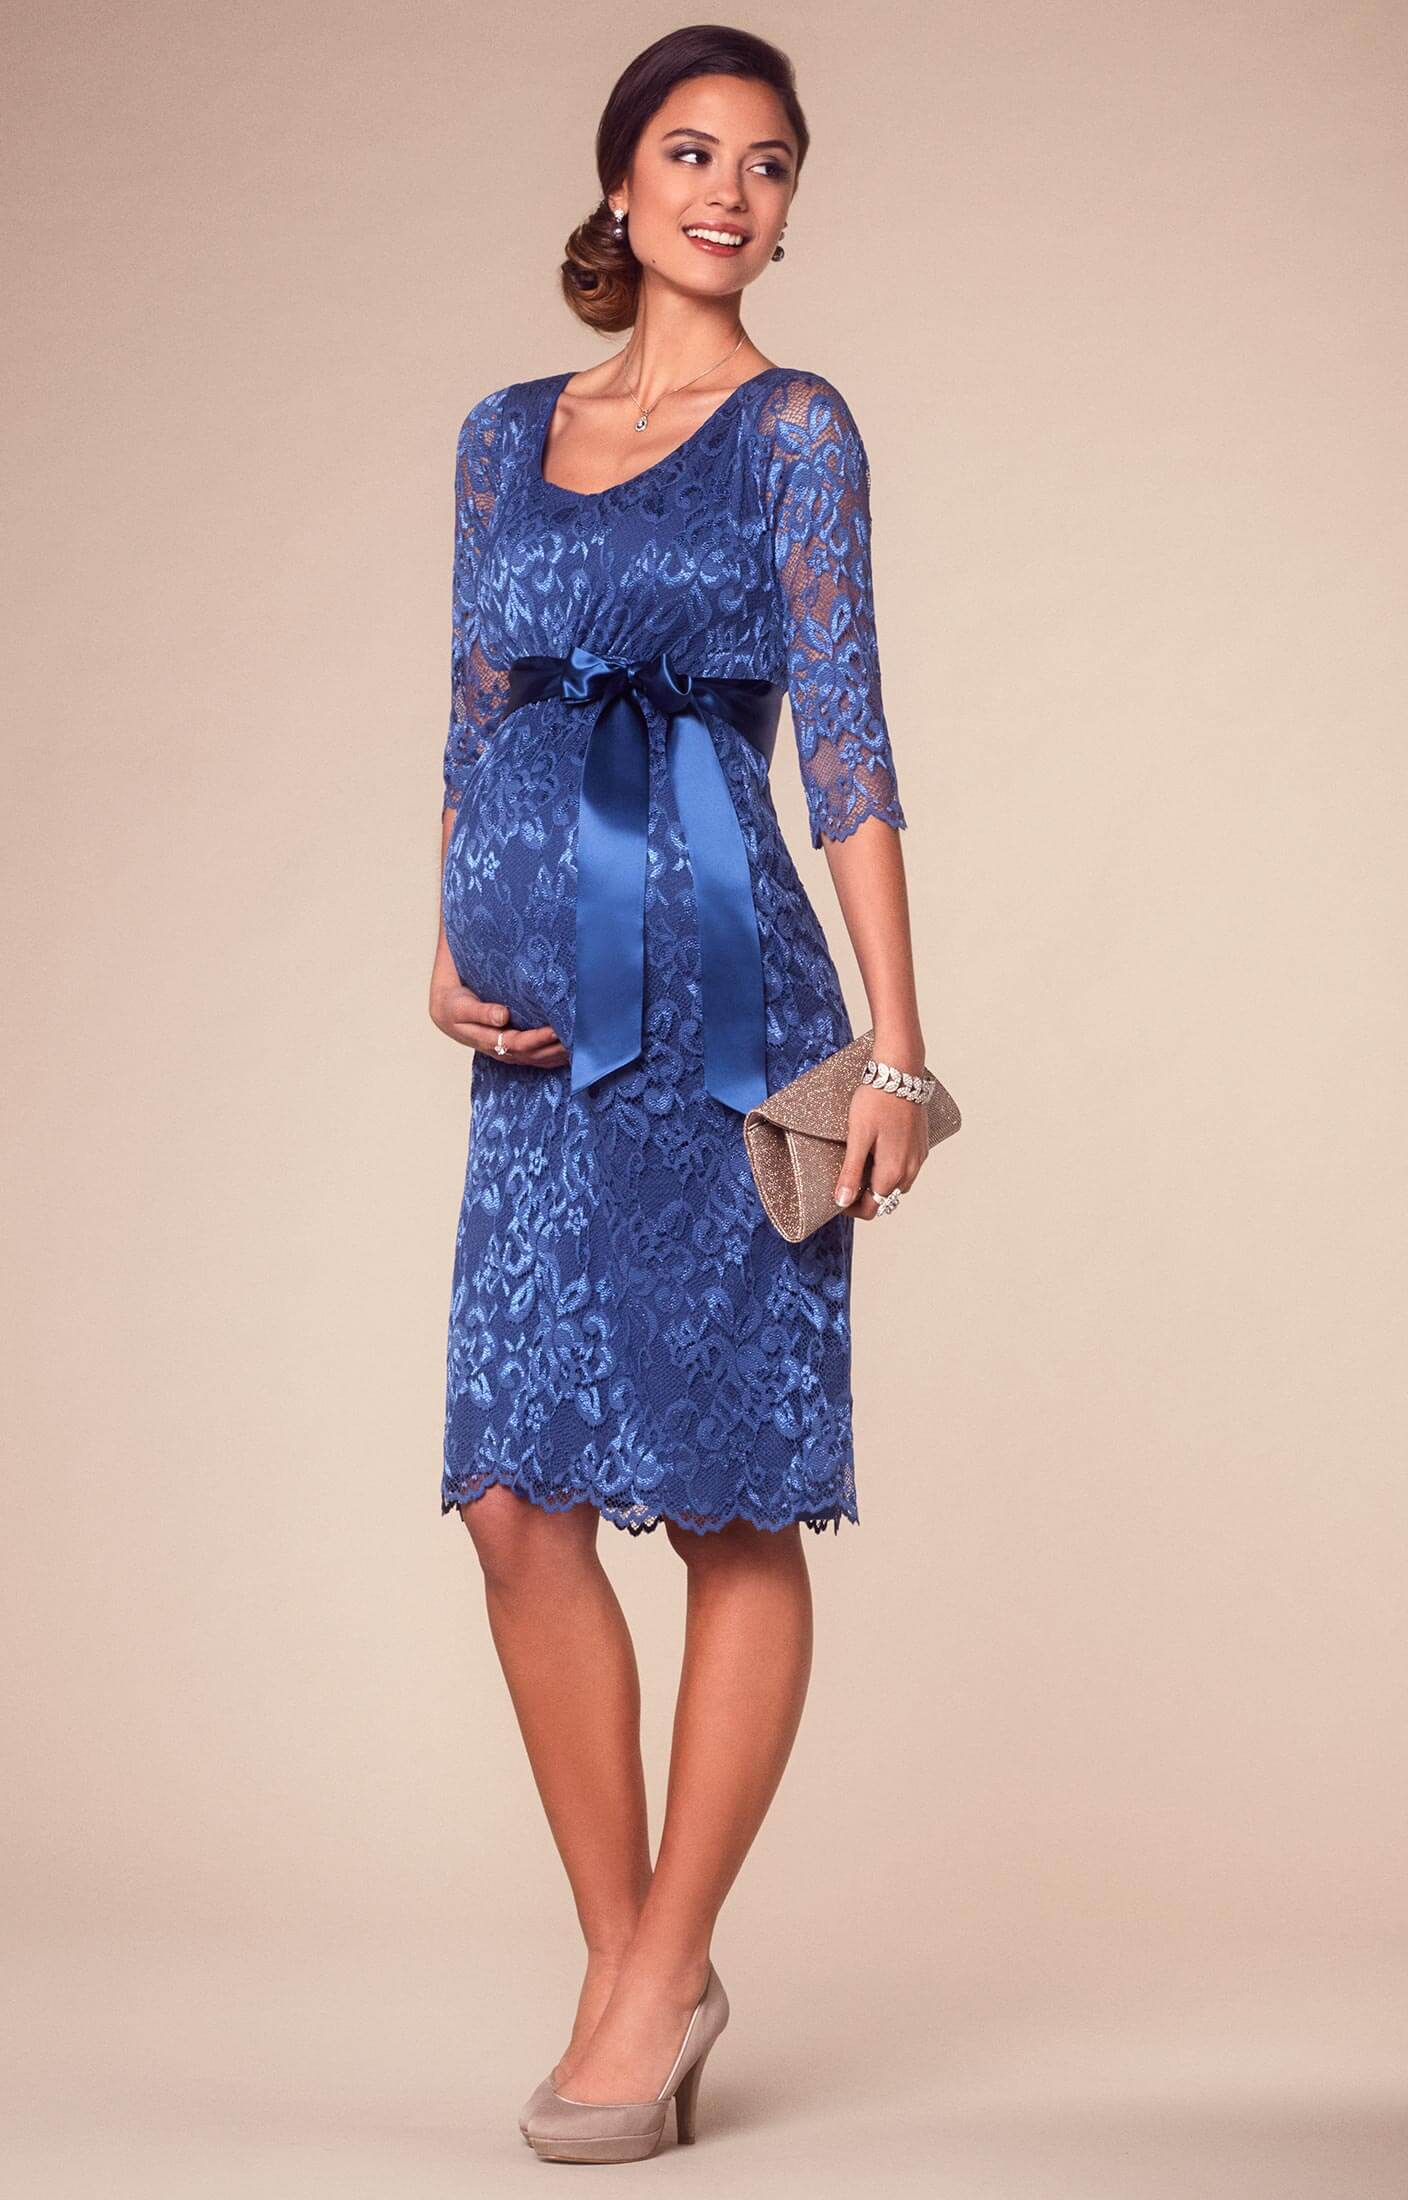 If you prefer short & sassy maternity evening wear, then check out the Front Tie maternity dresses formal and more casual by Maternal America, Tees by Tina fitted dresses with .